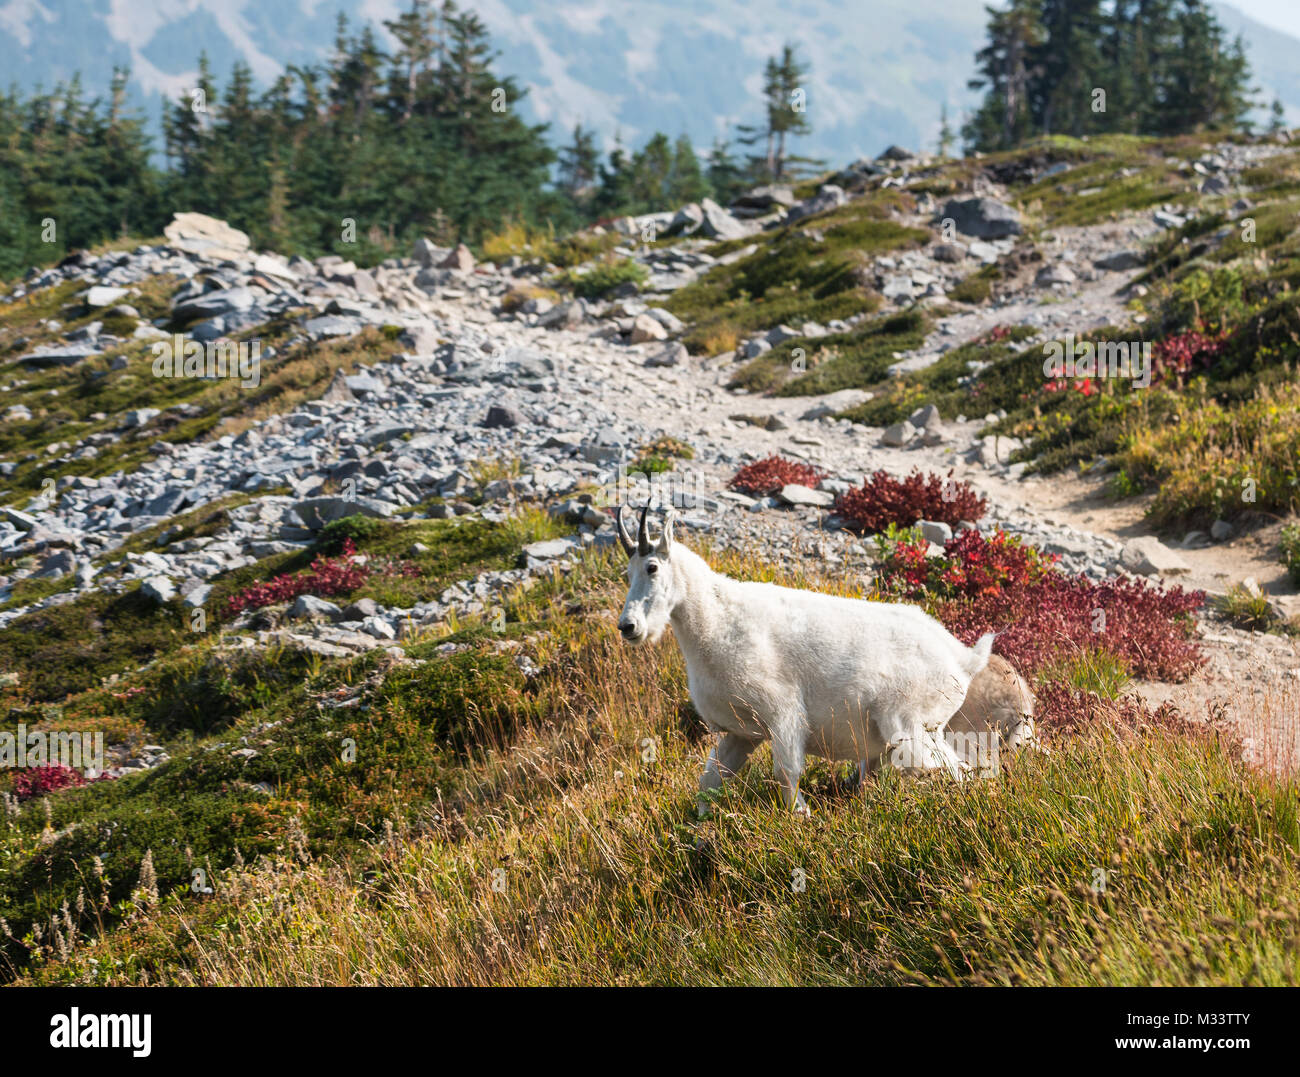 Mountain goat with colorful landscape - Stock Image